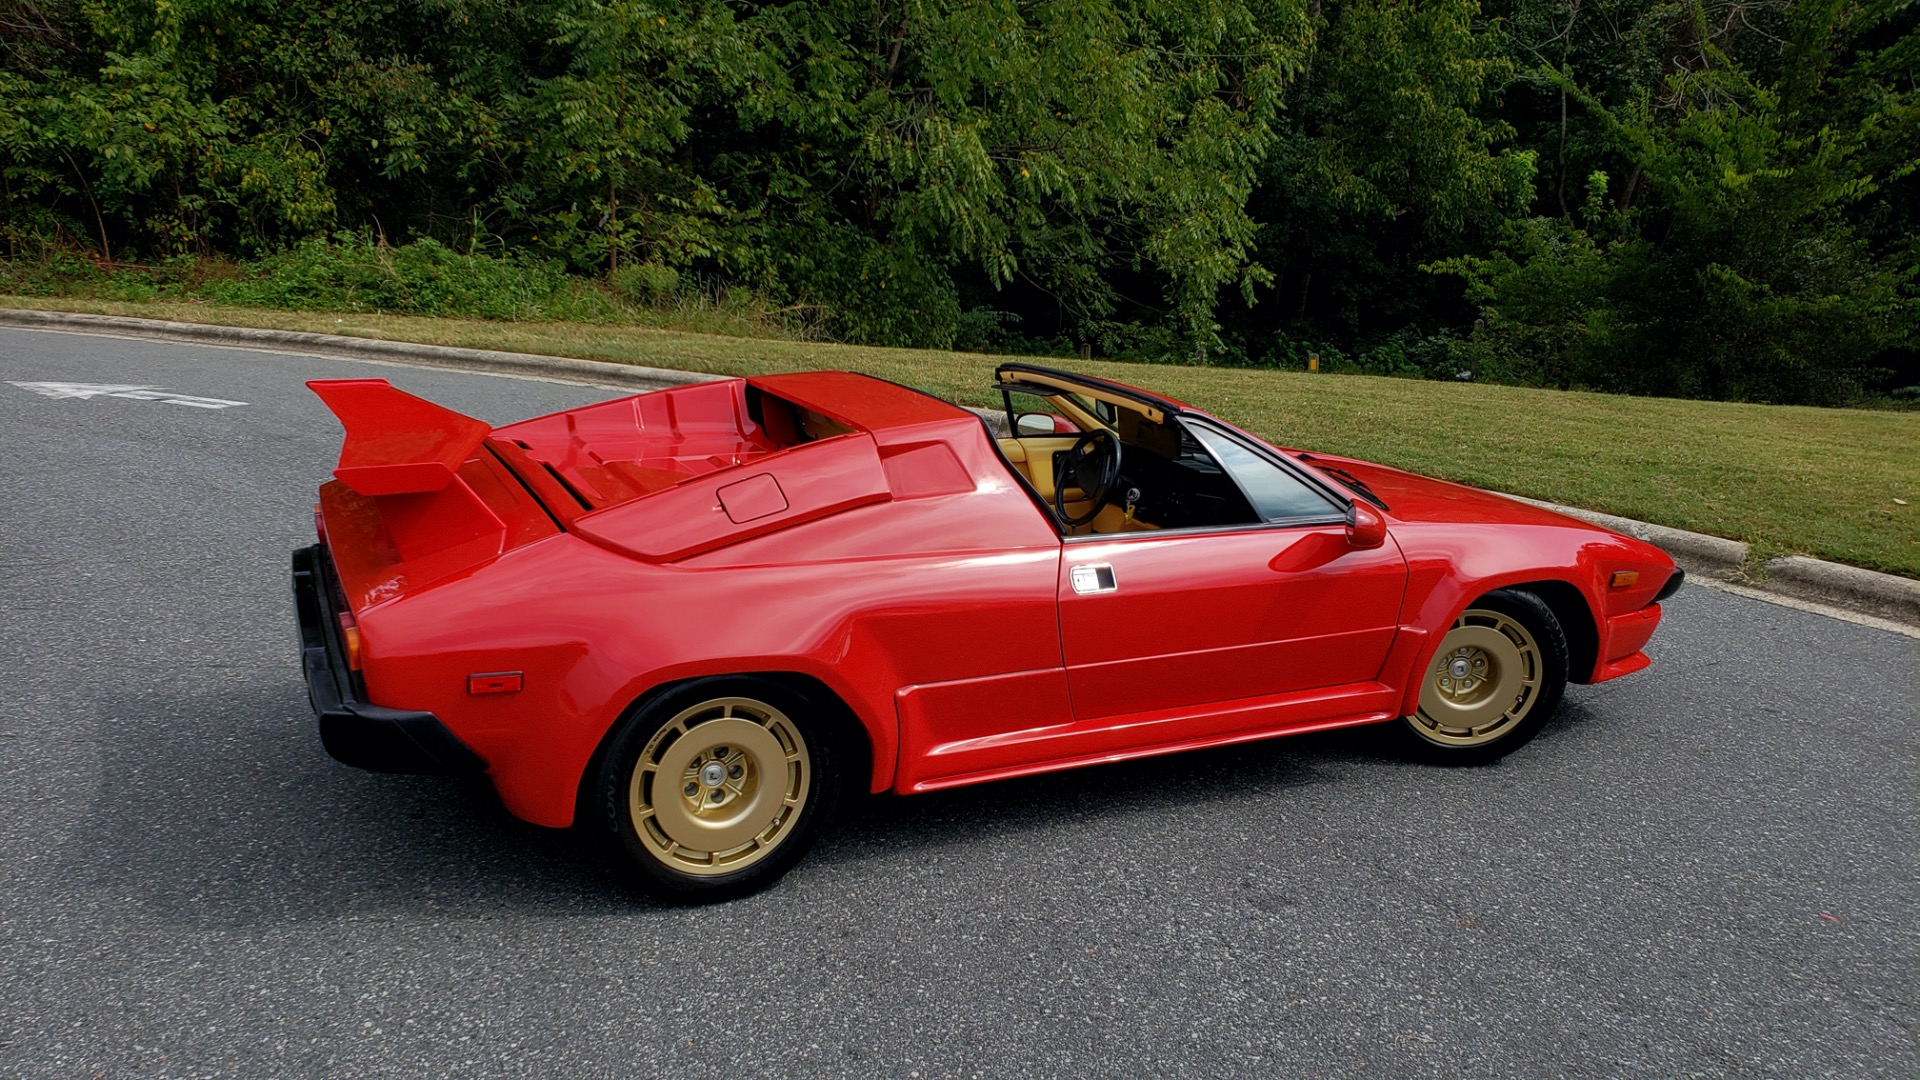 Used 1988 Lamborghini Jalpa 3.5 / 5-Speed Man / Low Miles / Excellent Condition for sale $108,995 at Formula Imports in Charlotte NC 28227 28